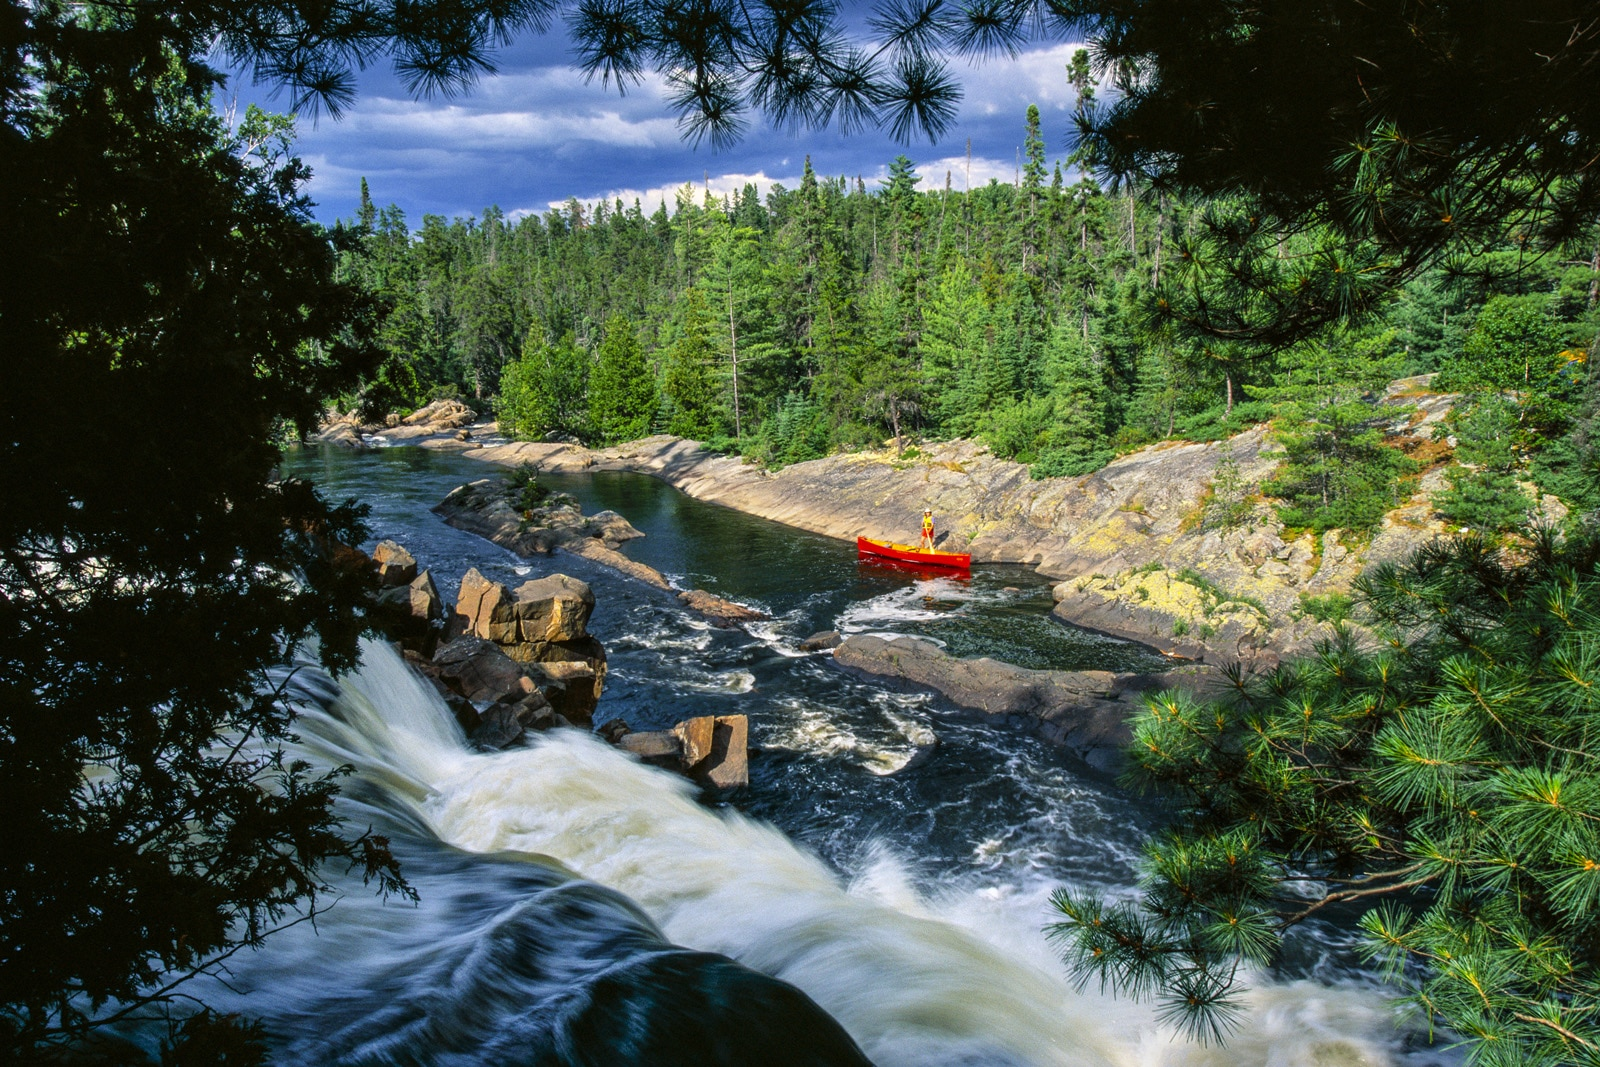 Canoer on shore of river with rapids